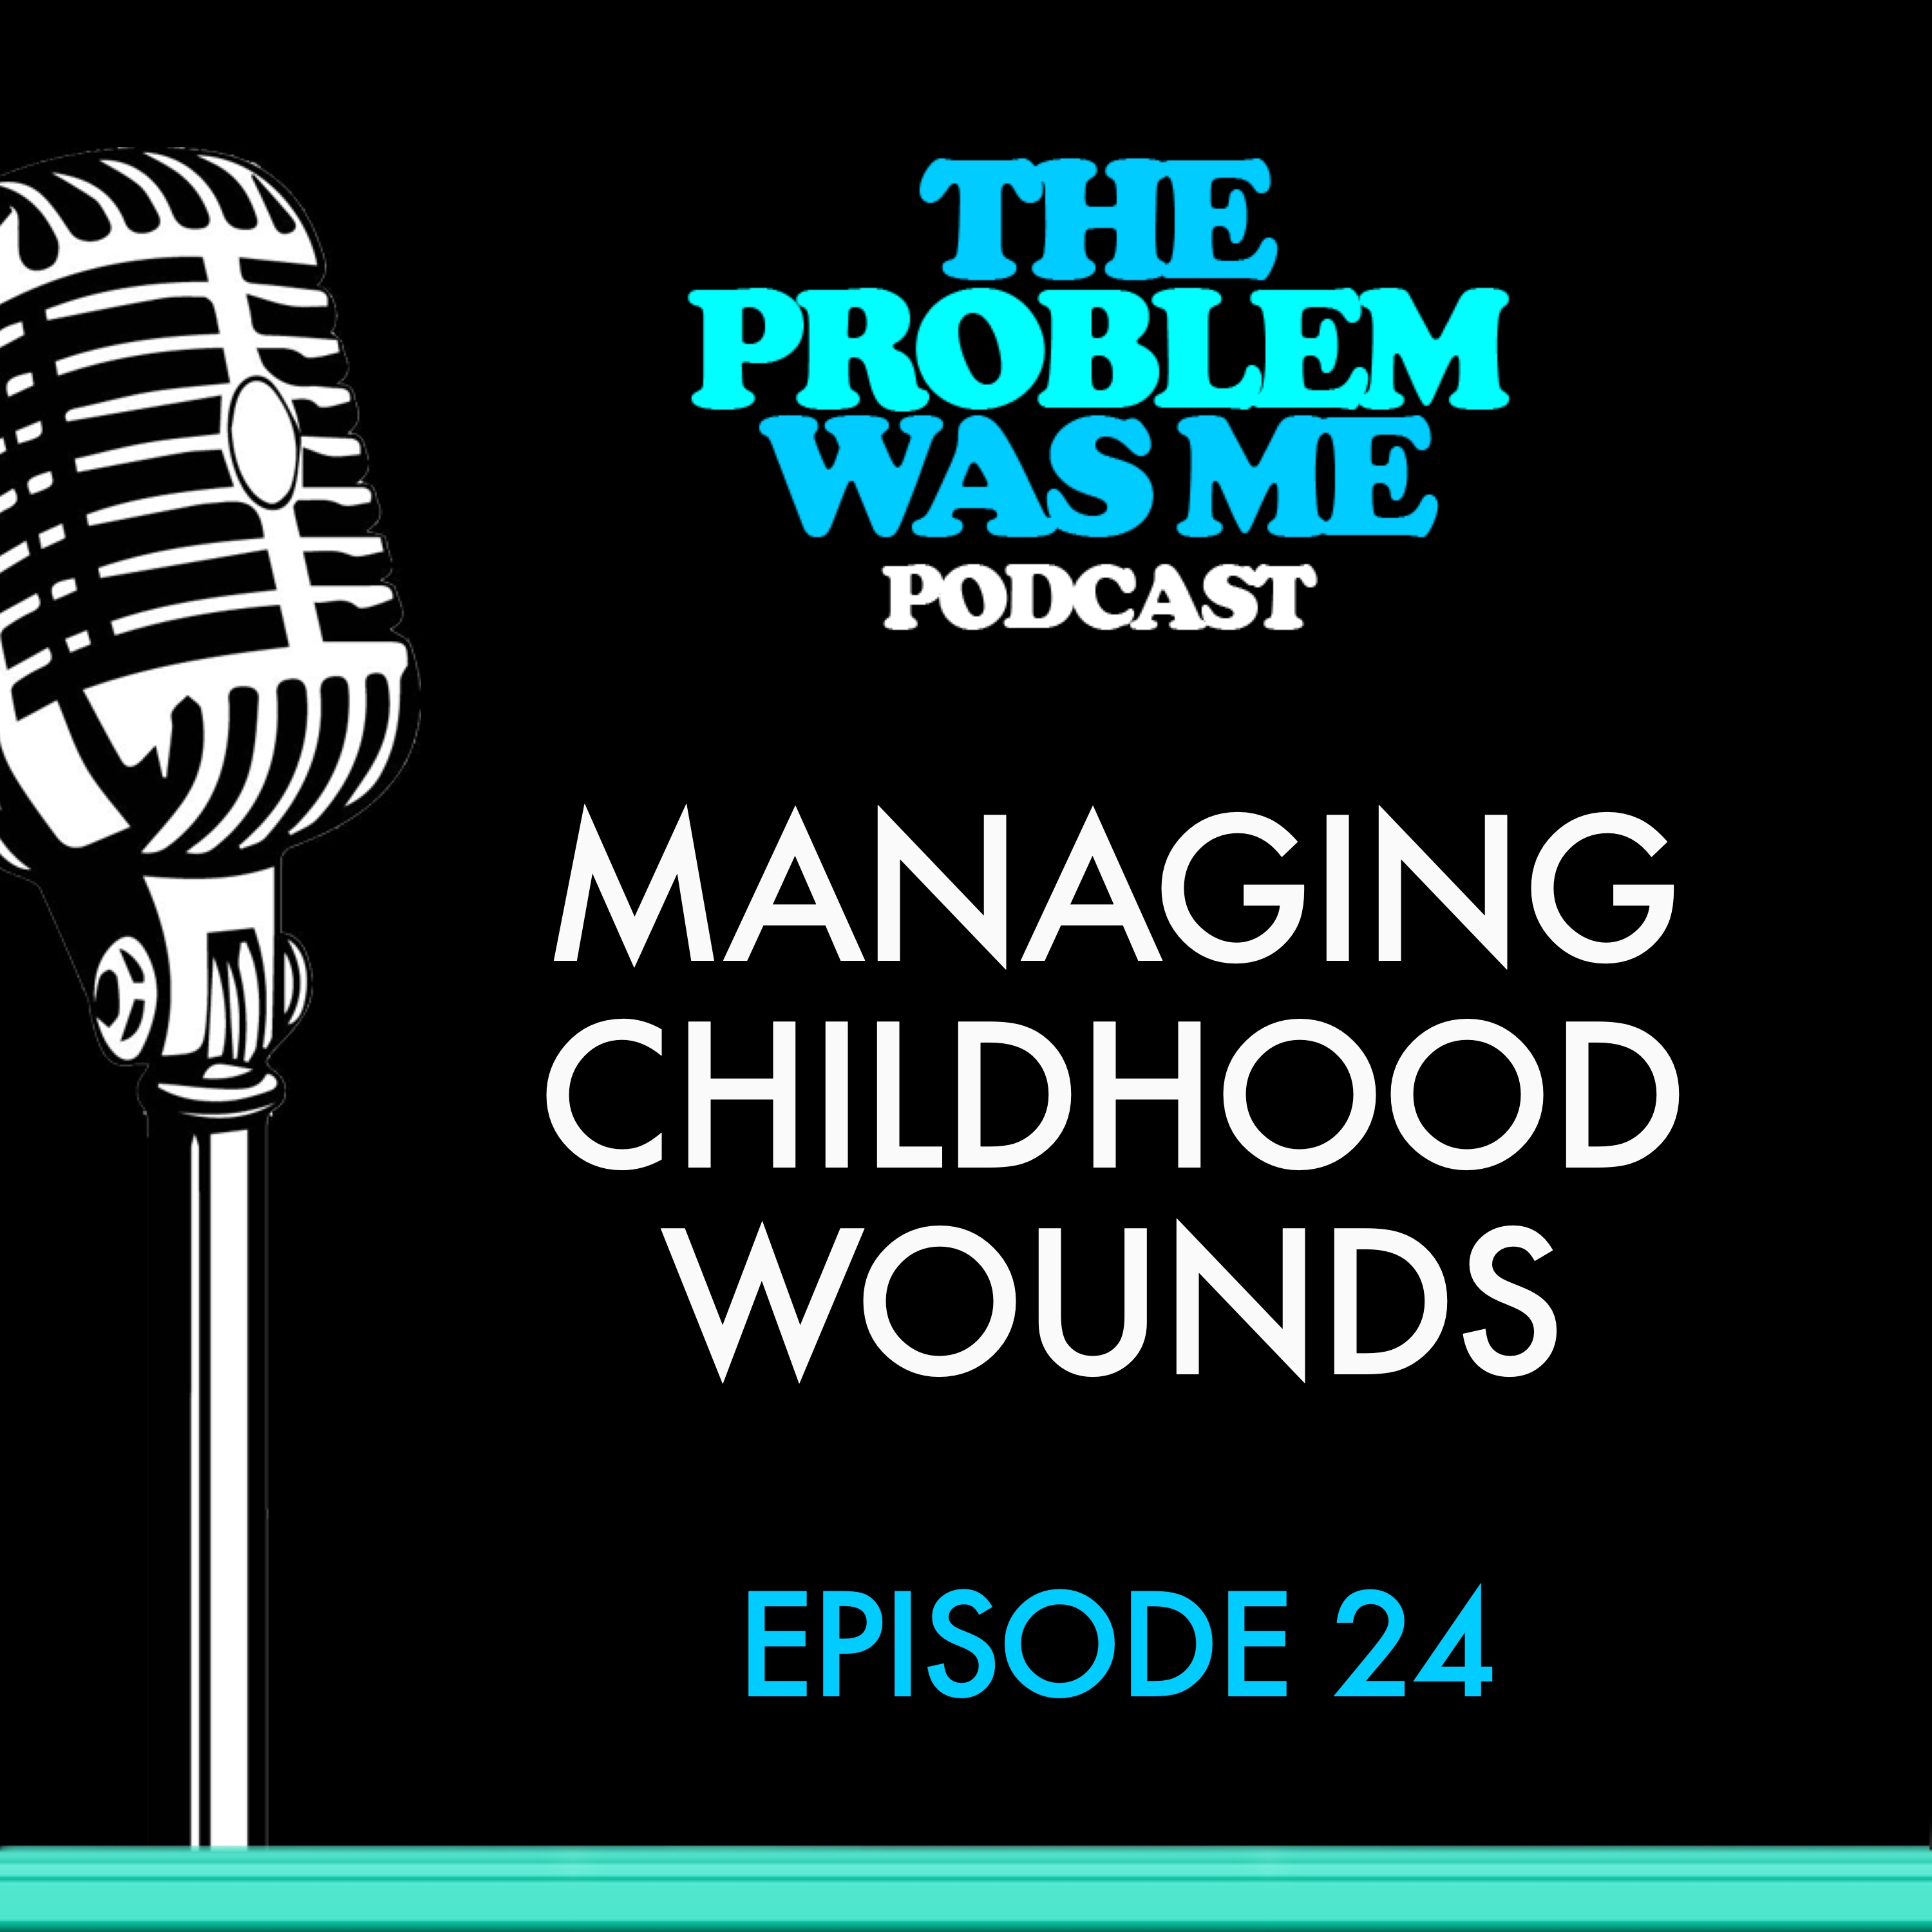 Managing Childhood Wounds